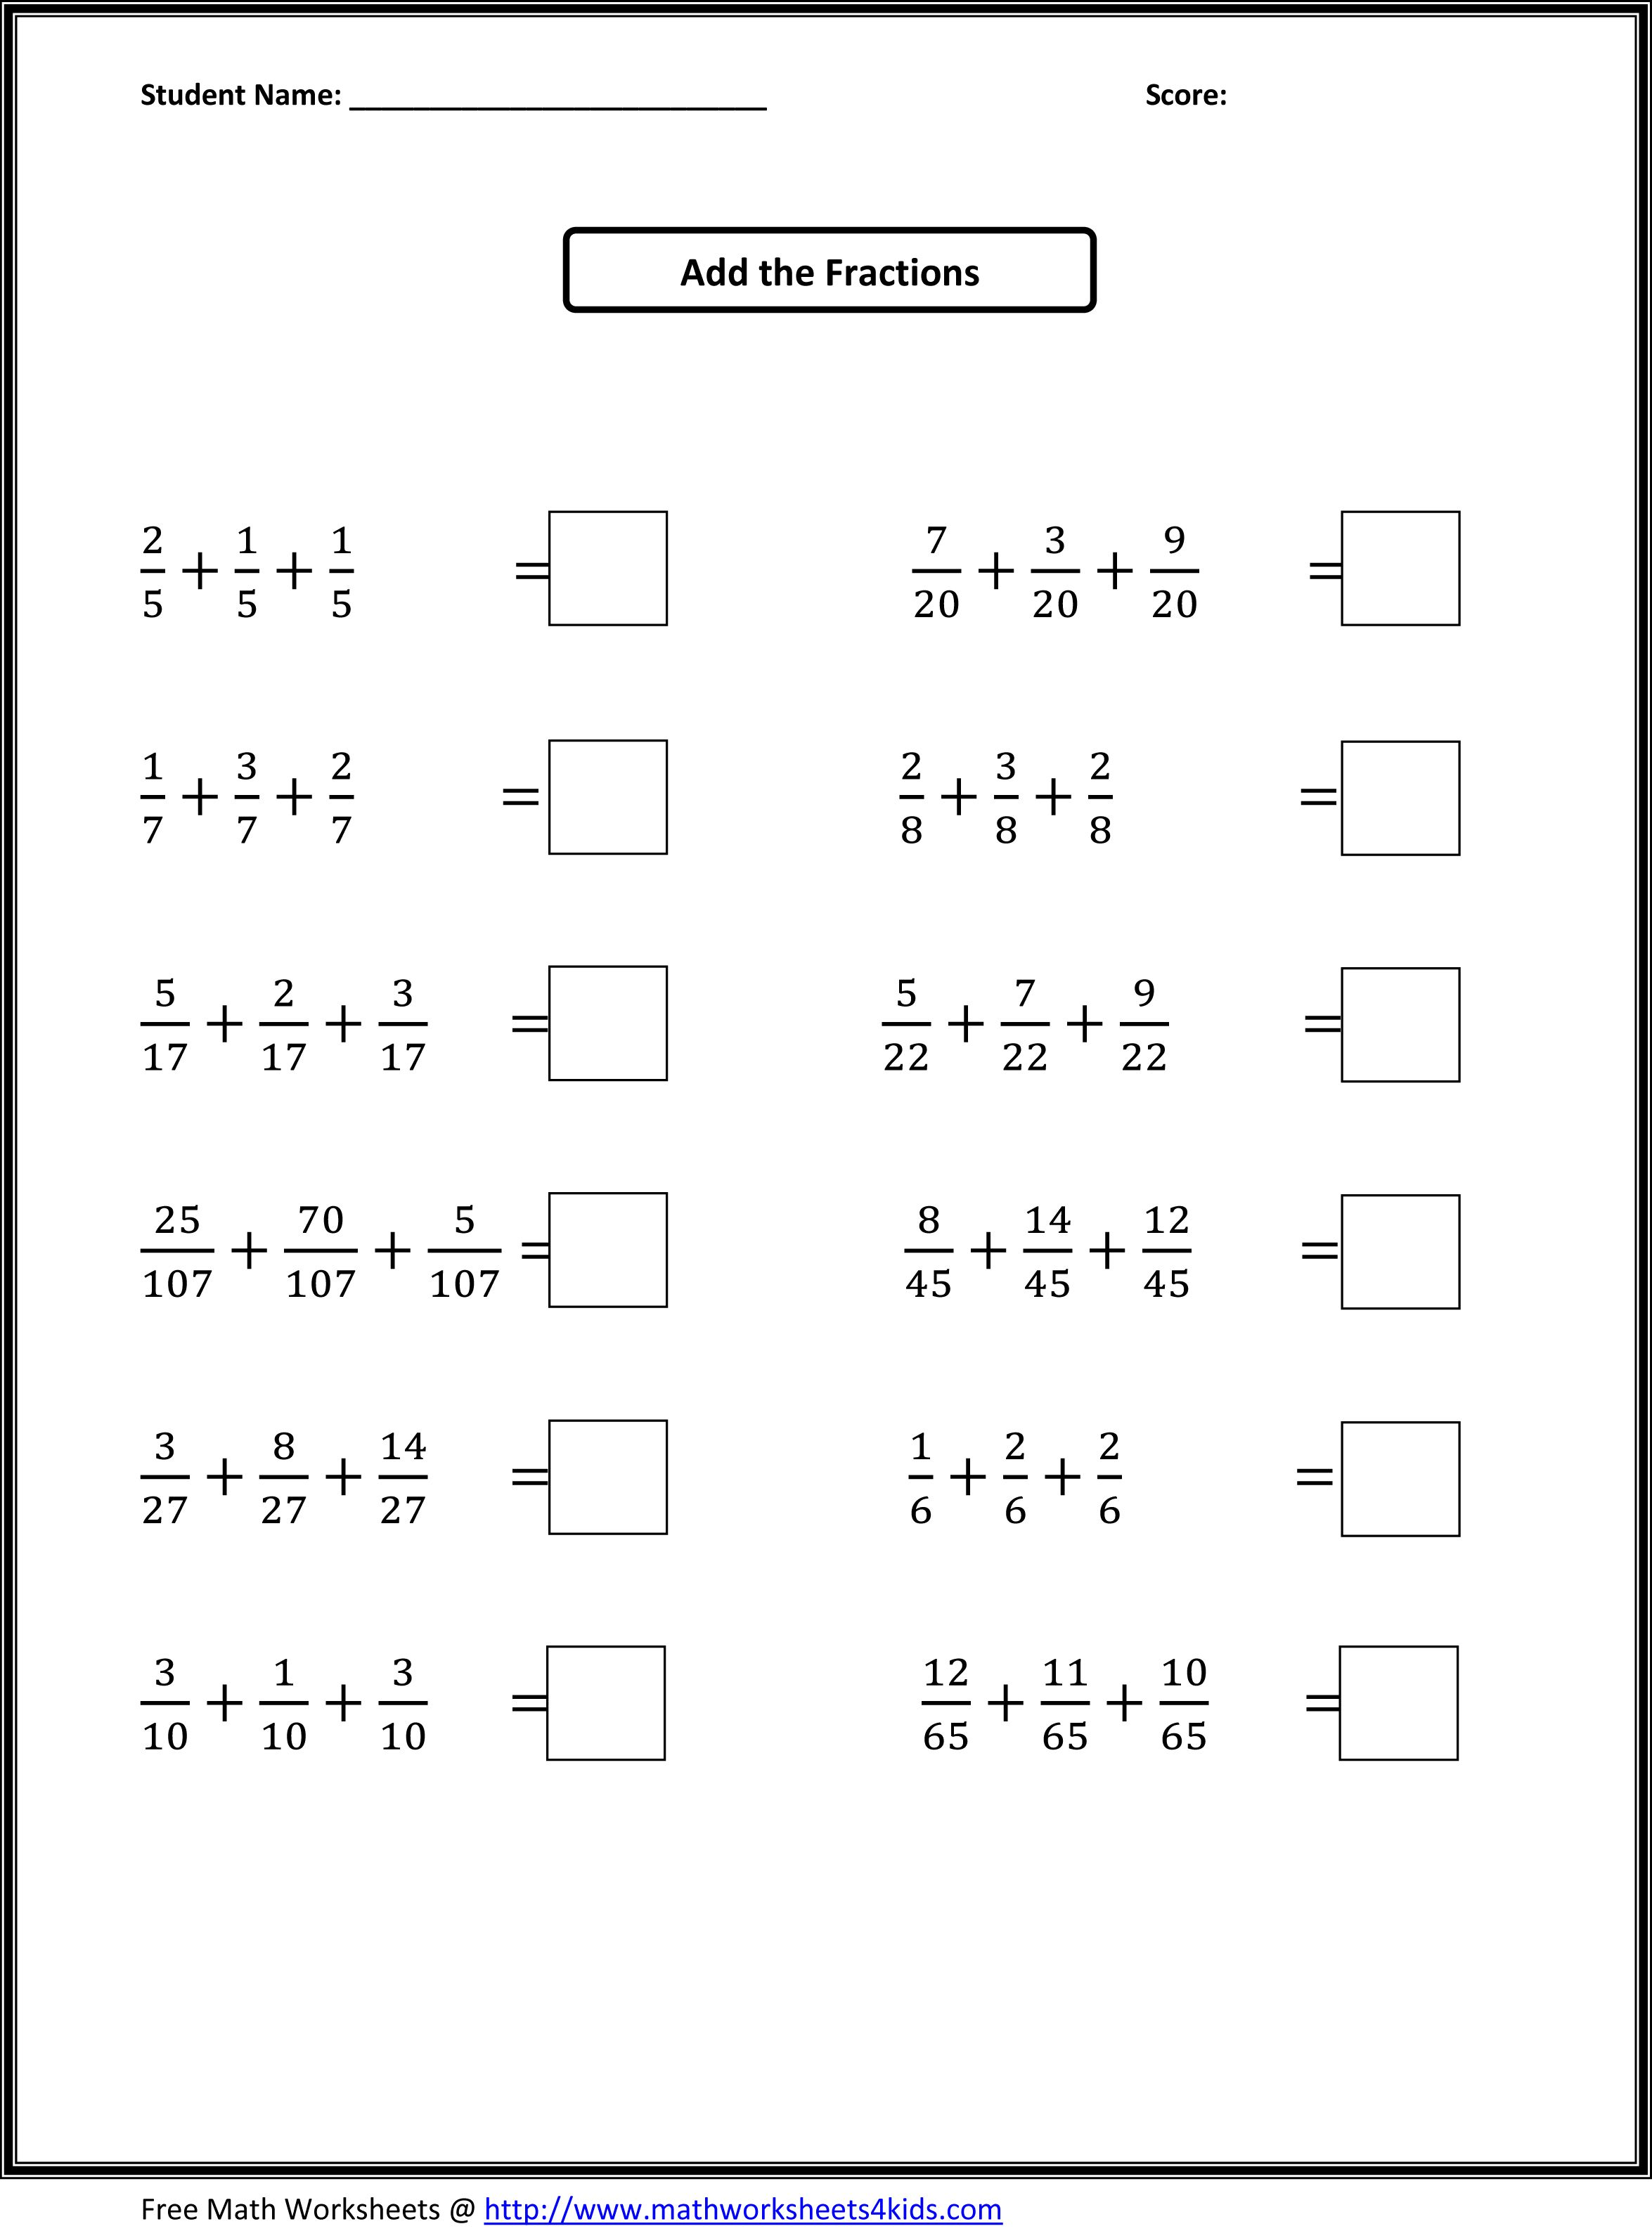 worksheet Addition Fractions Worksheets worksheets for all early ed grades topics of math high quality equivalent fractions grade photos adding fractions